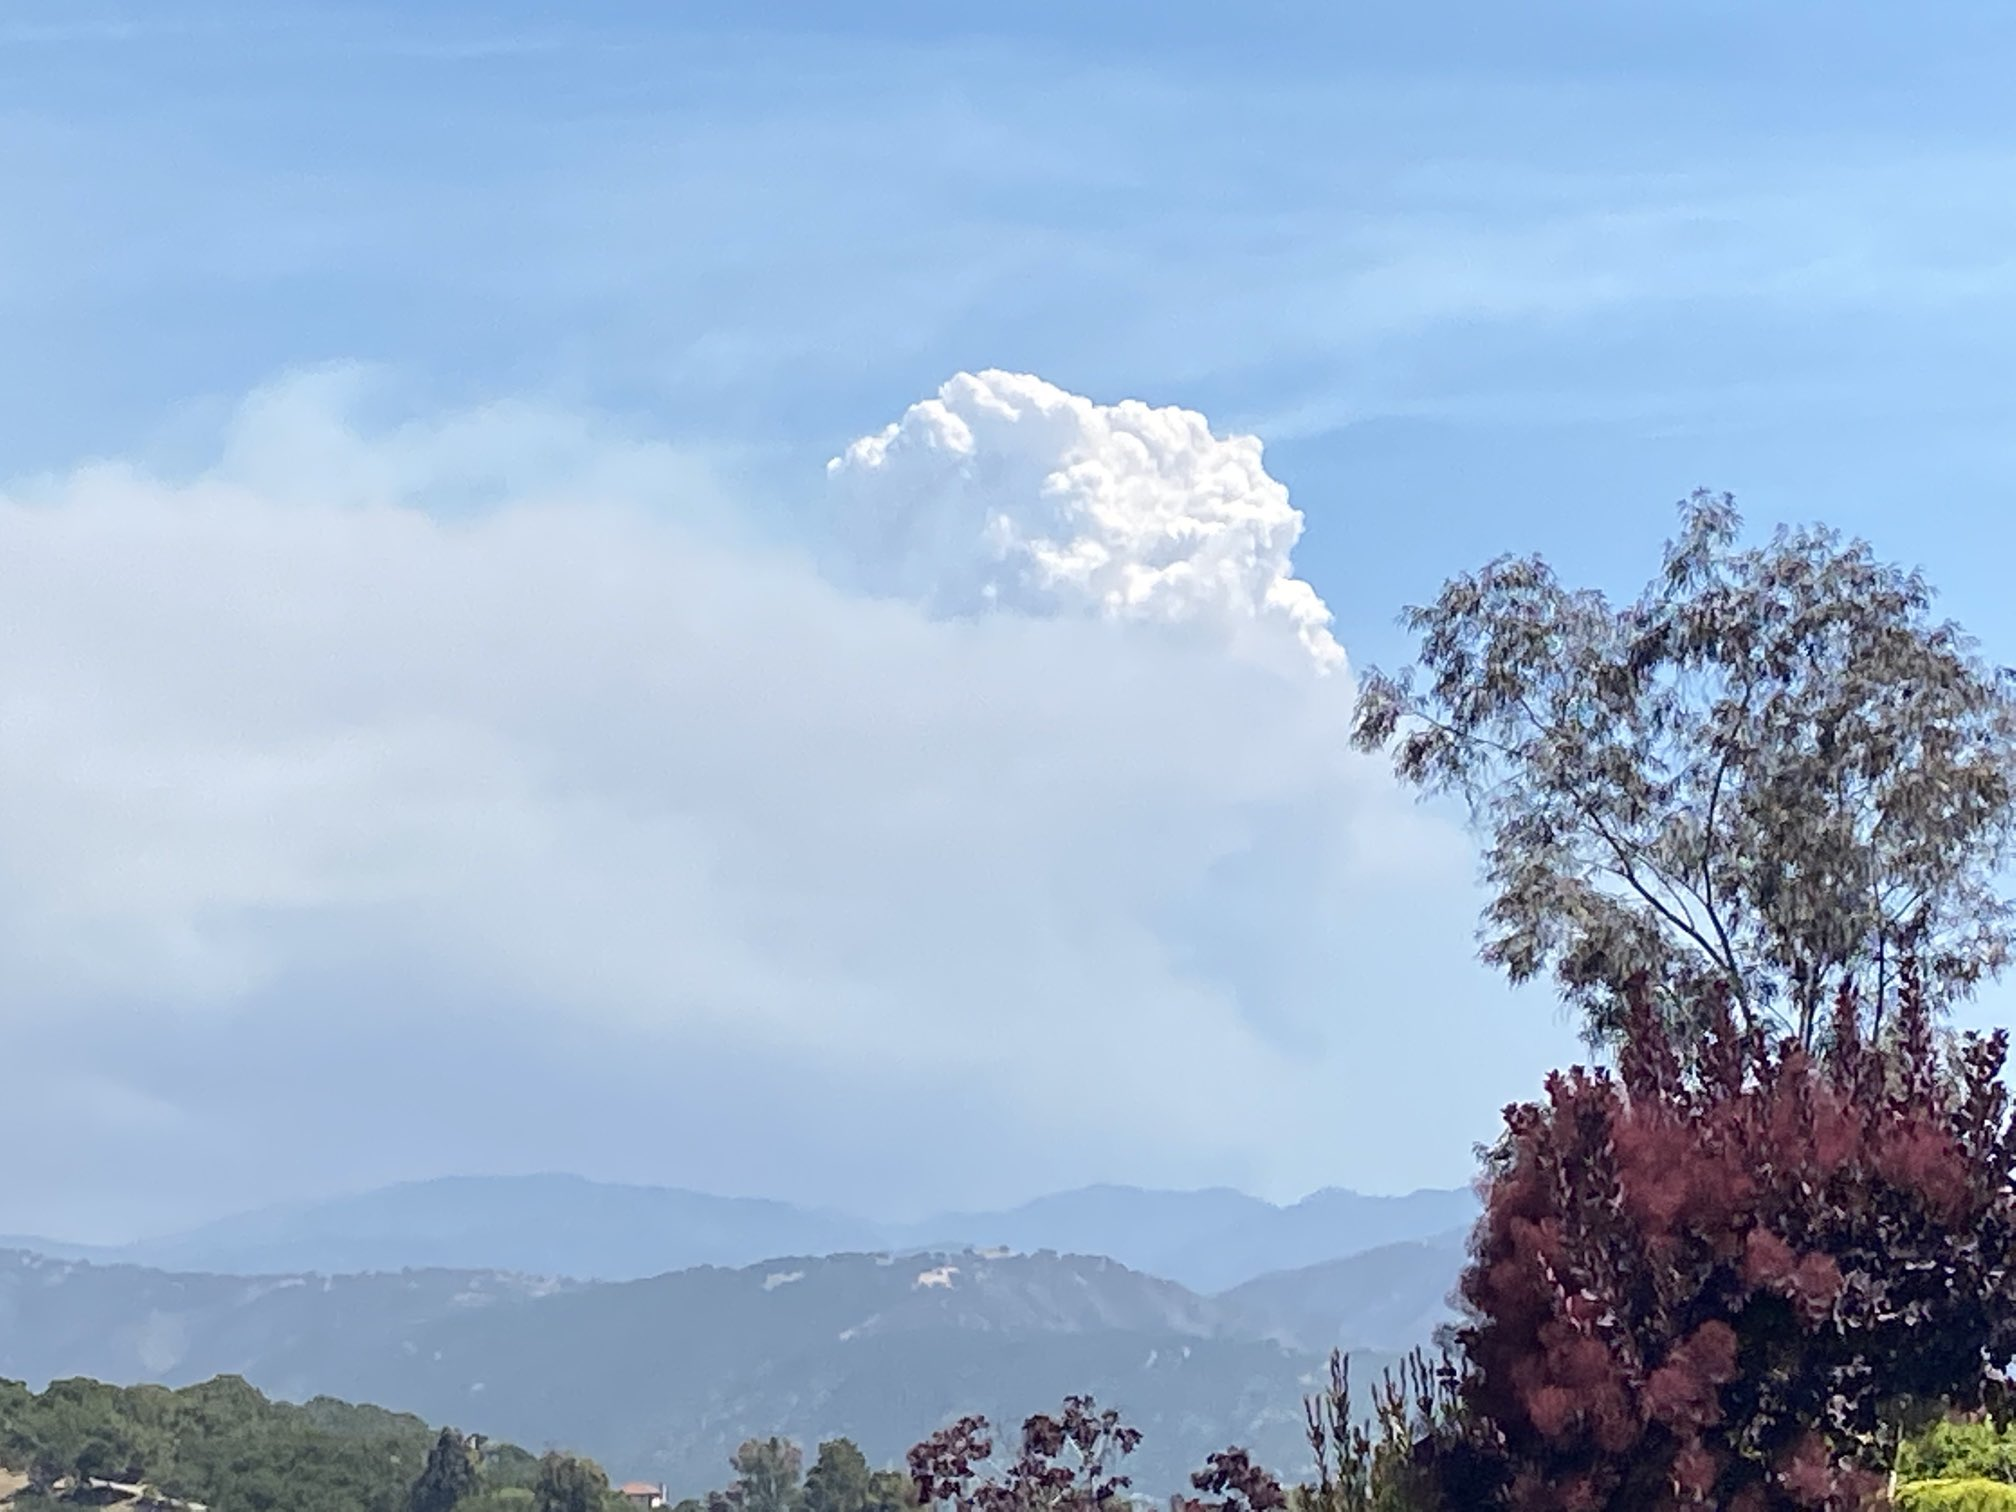 Smoke from Big Sur fire to impact SF Bay Area: Here's when